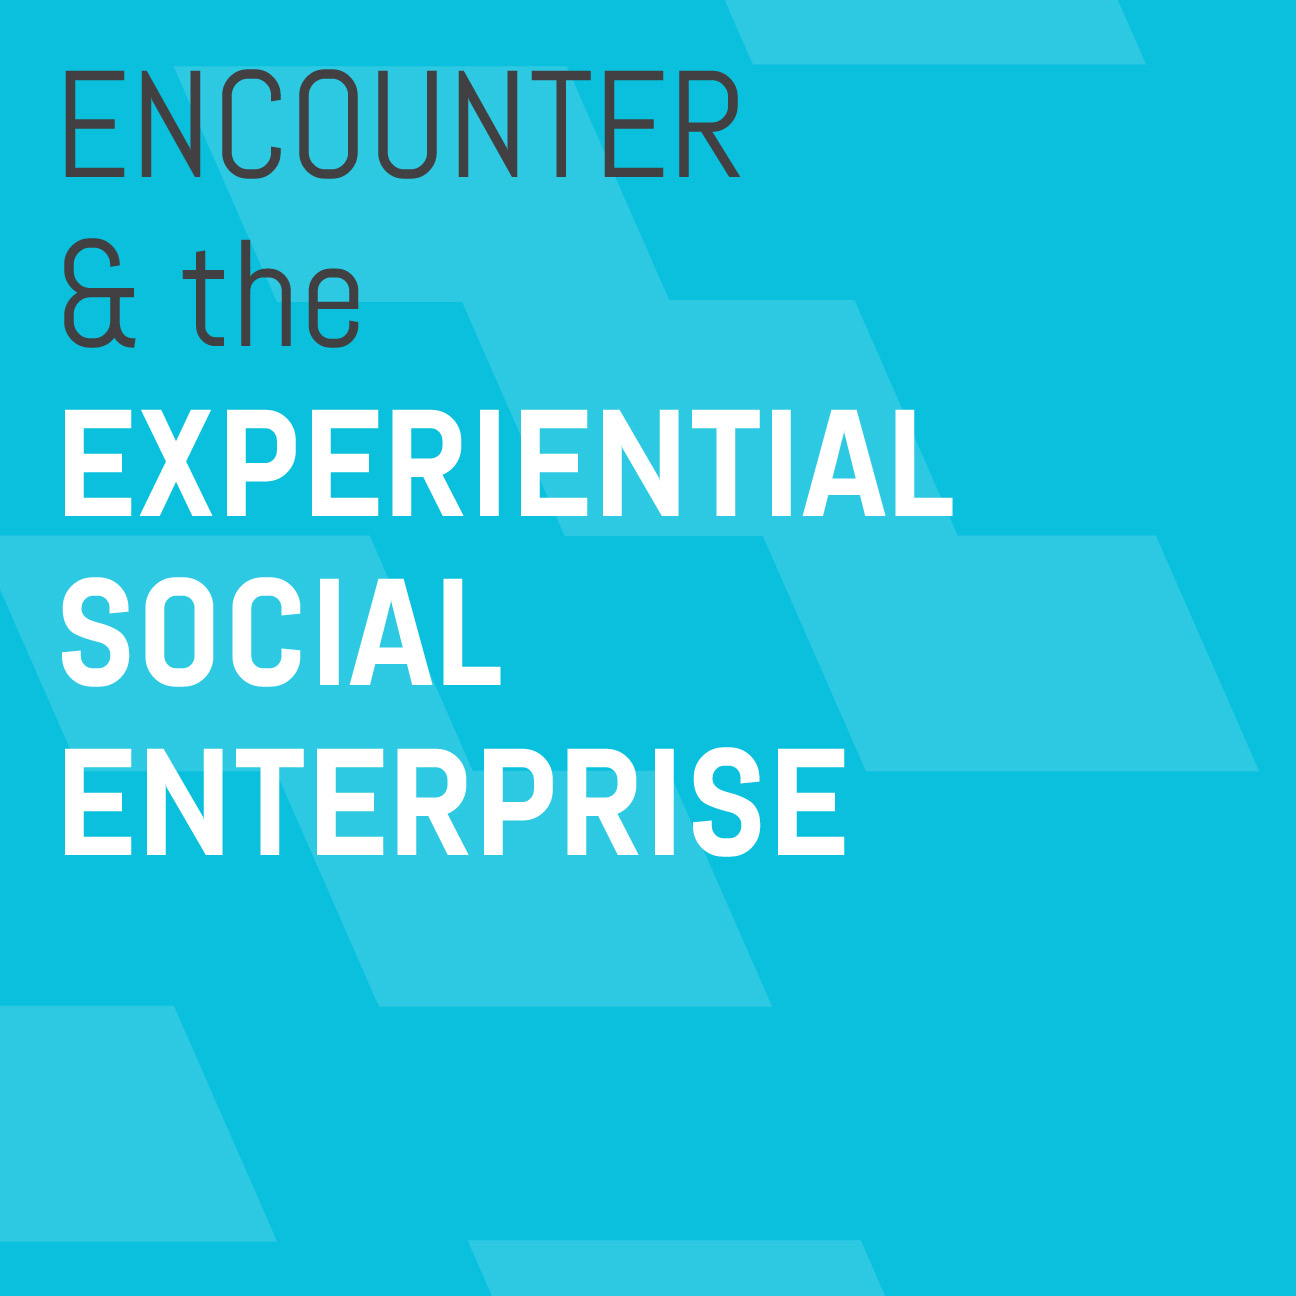 Encounter-&-the-Experiential-Social-Enterprise.jpg